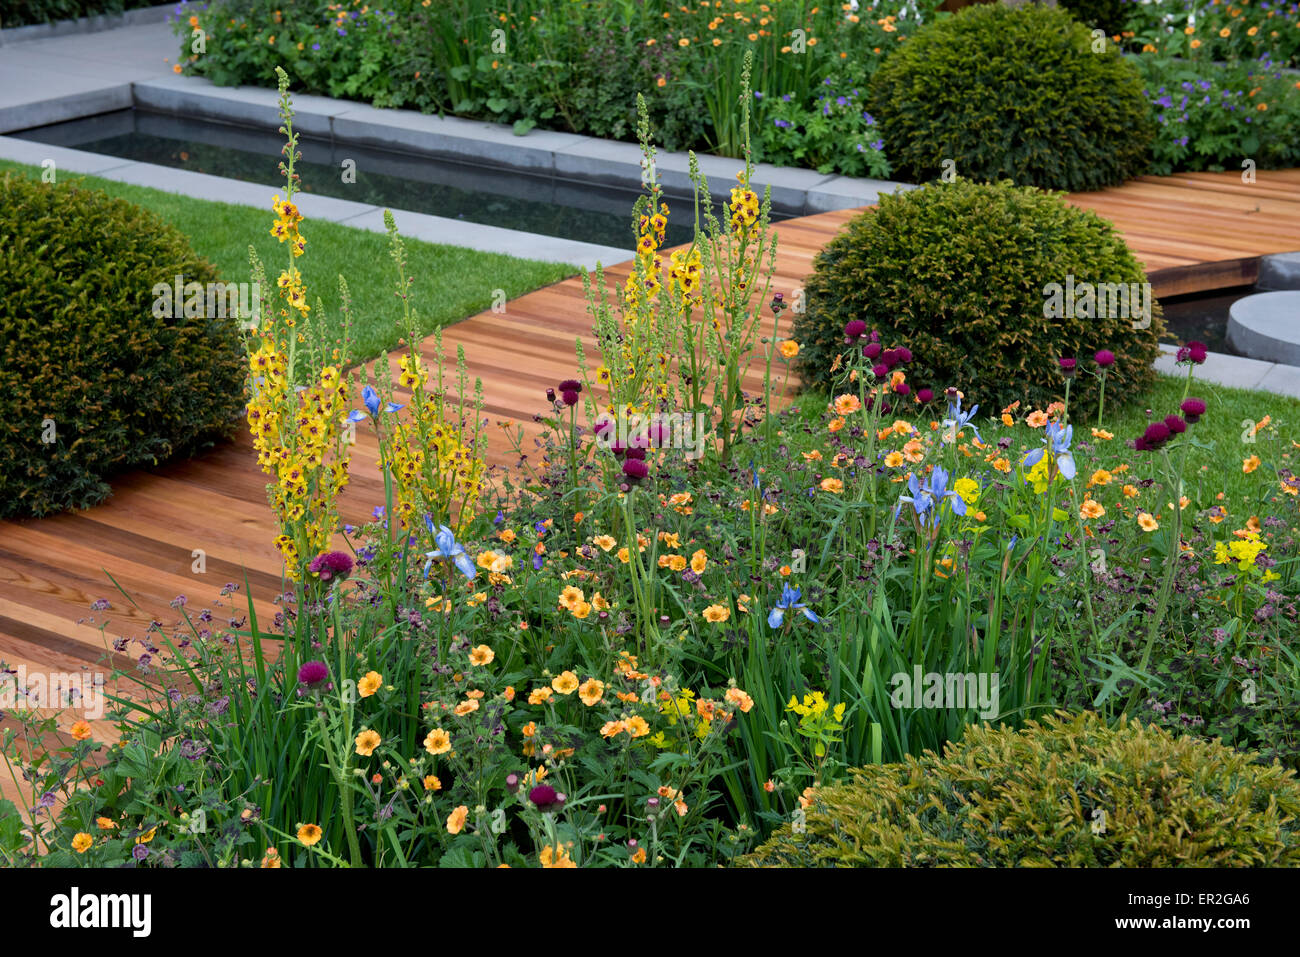 Stock Photo   The Homebase Urban Retreat Garden Designed By Adam Frost And  Winner Of A Gold Medal In The Show Gardens Category At The Chelsea